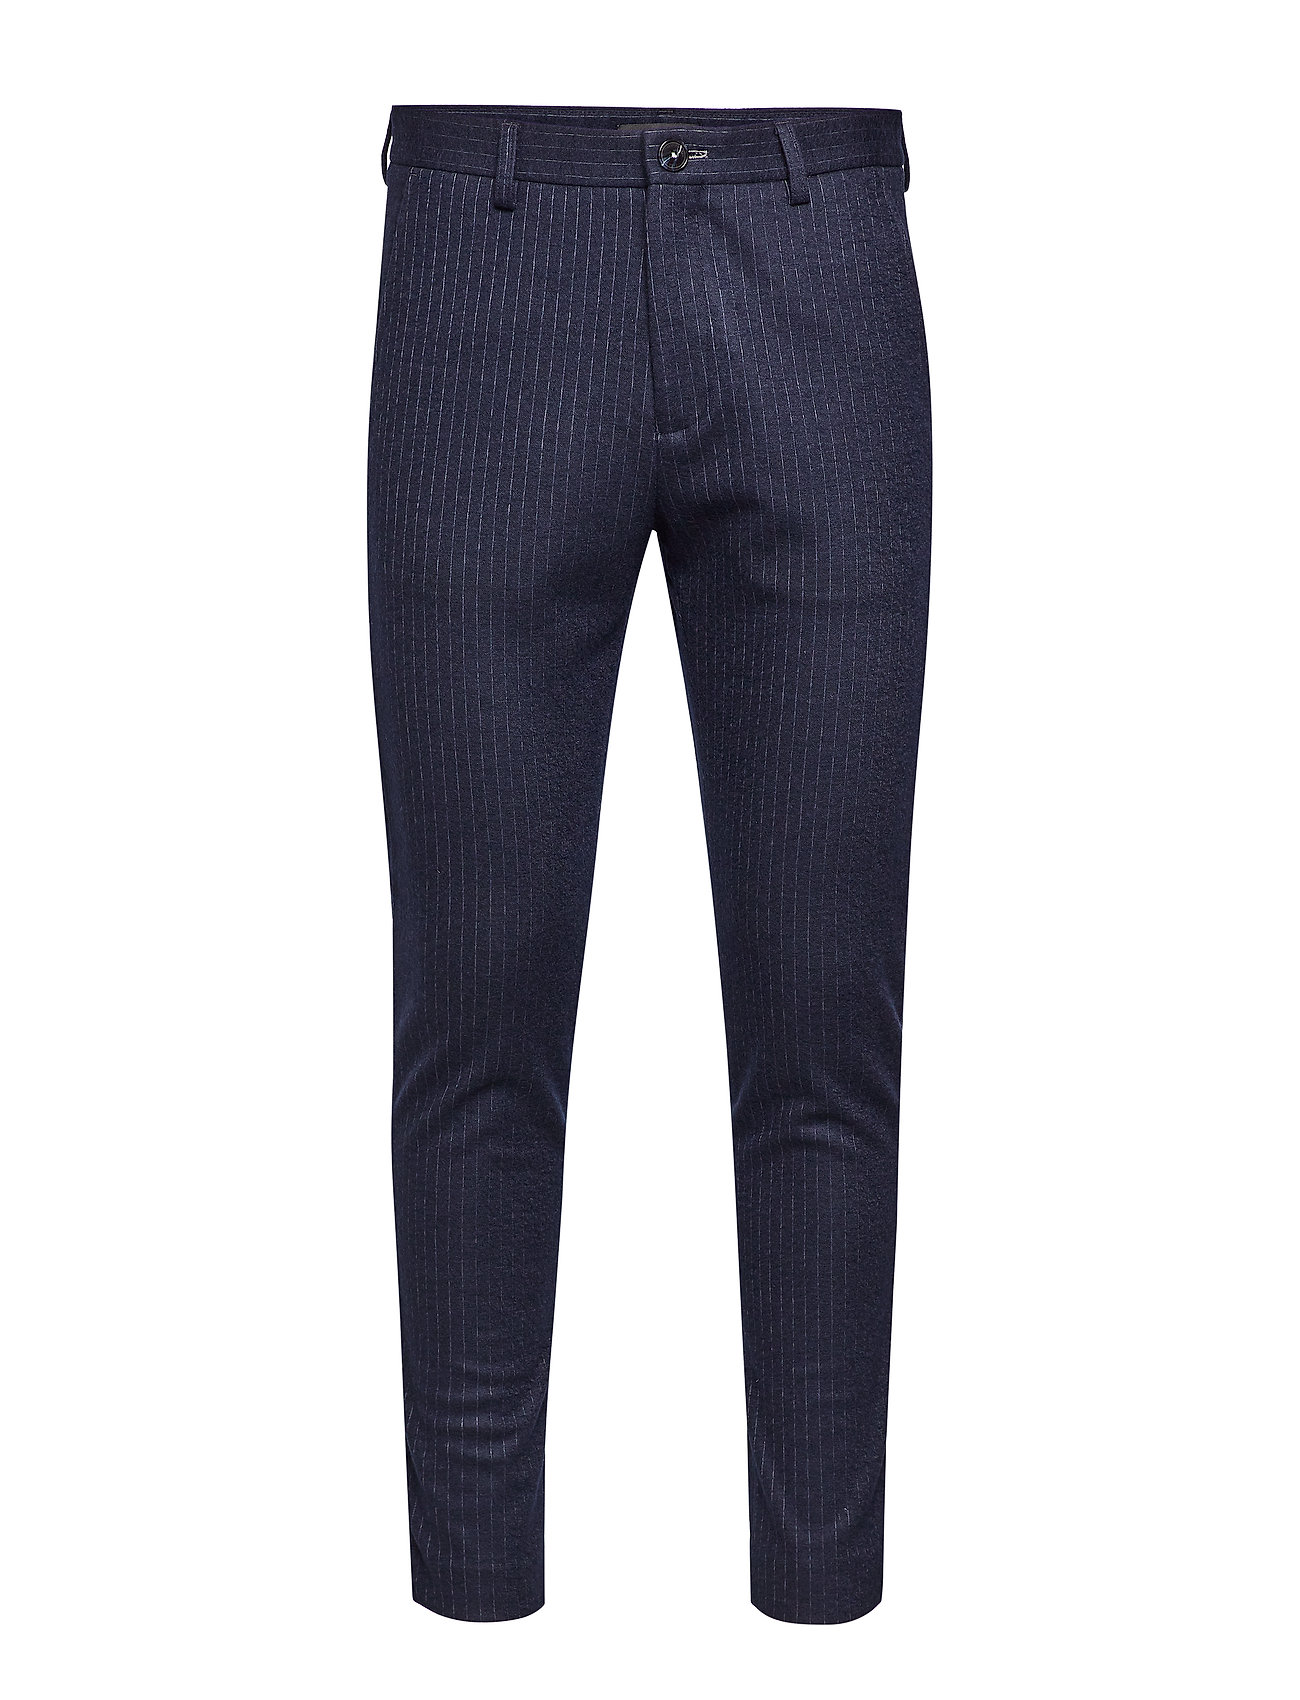 Matinique Paton Jersey Pant - DARK NAVY